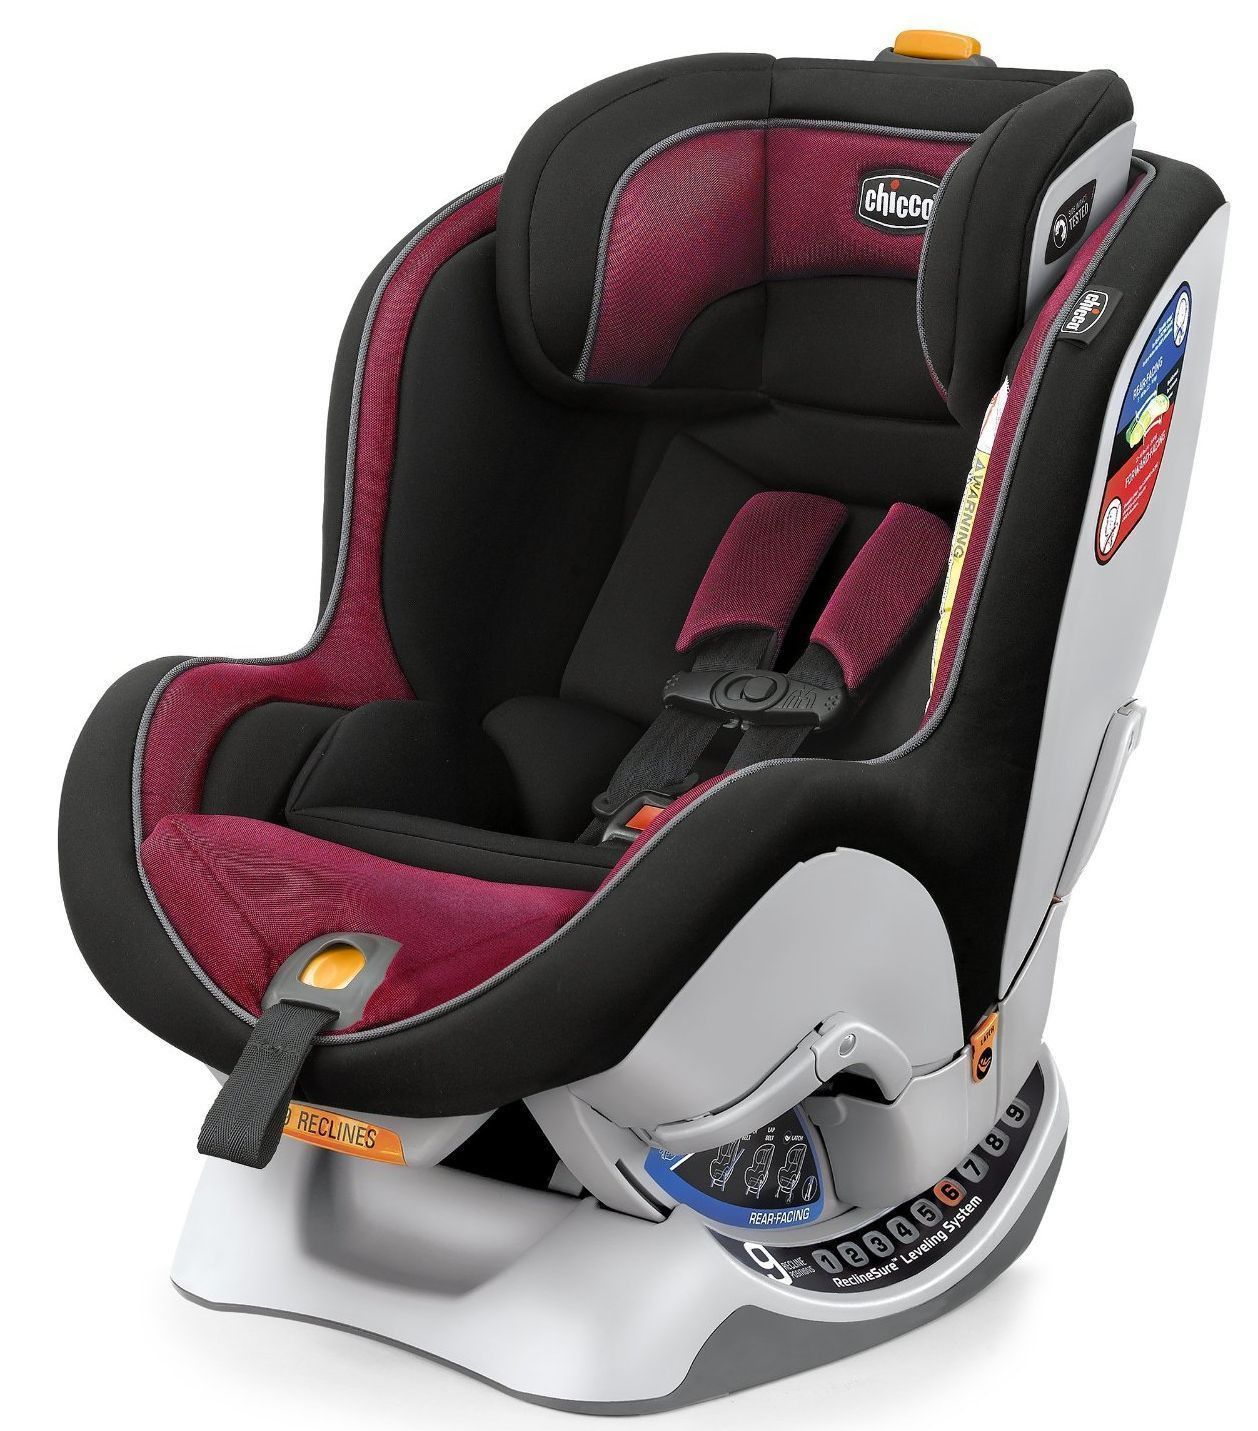 Chicco NextFit Convertible Child Safety Easy Install Car Seat Saffron